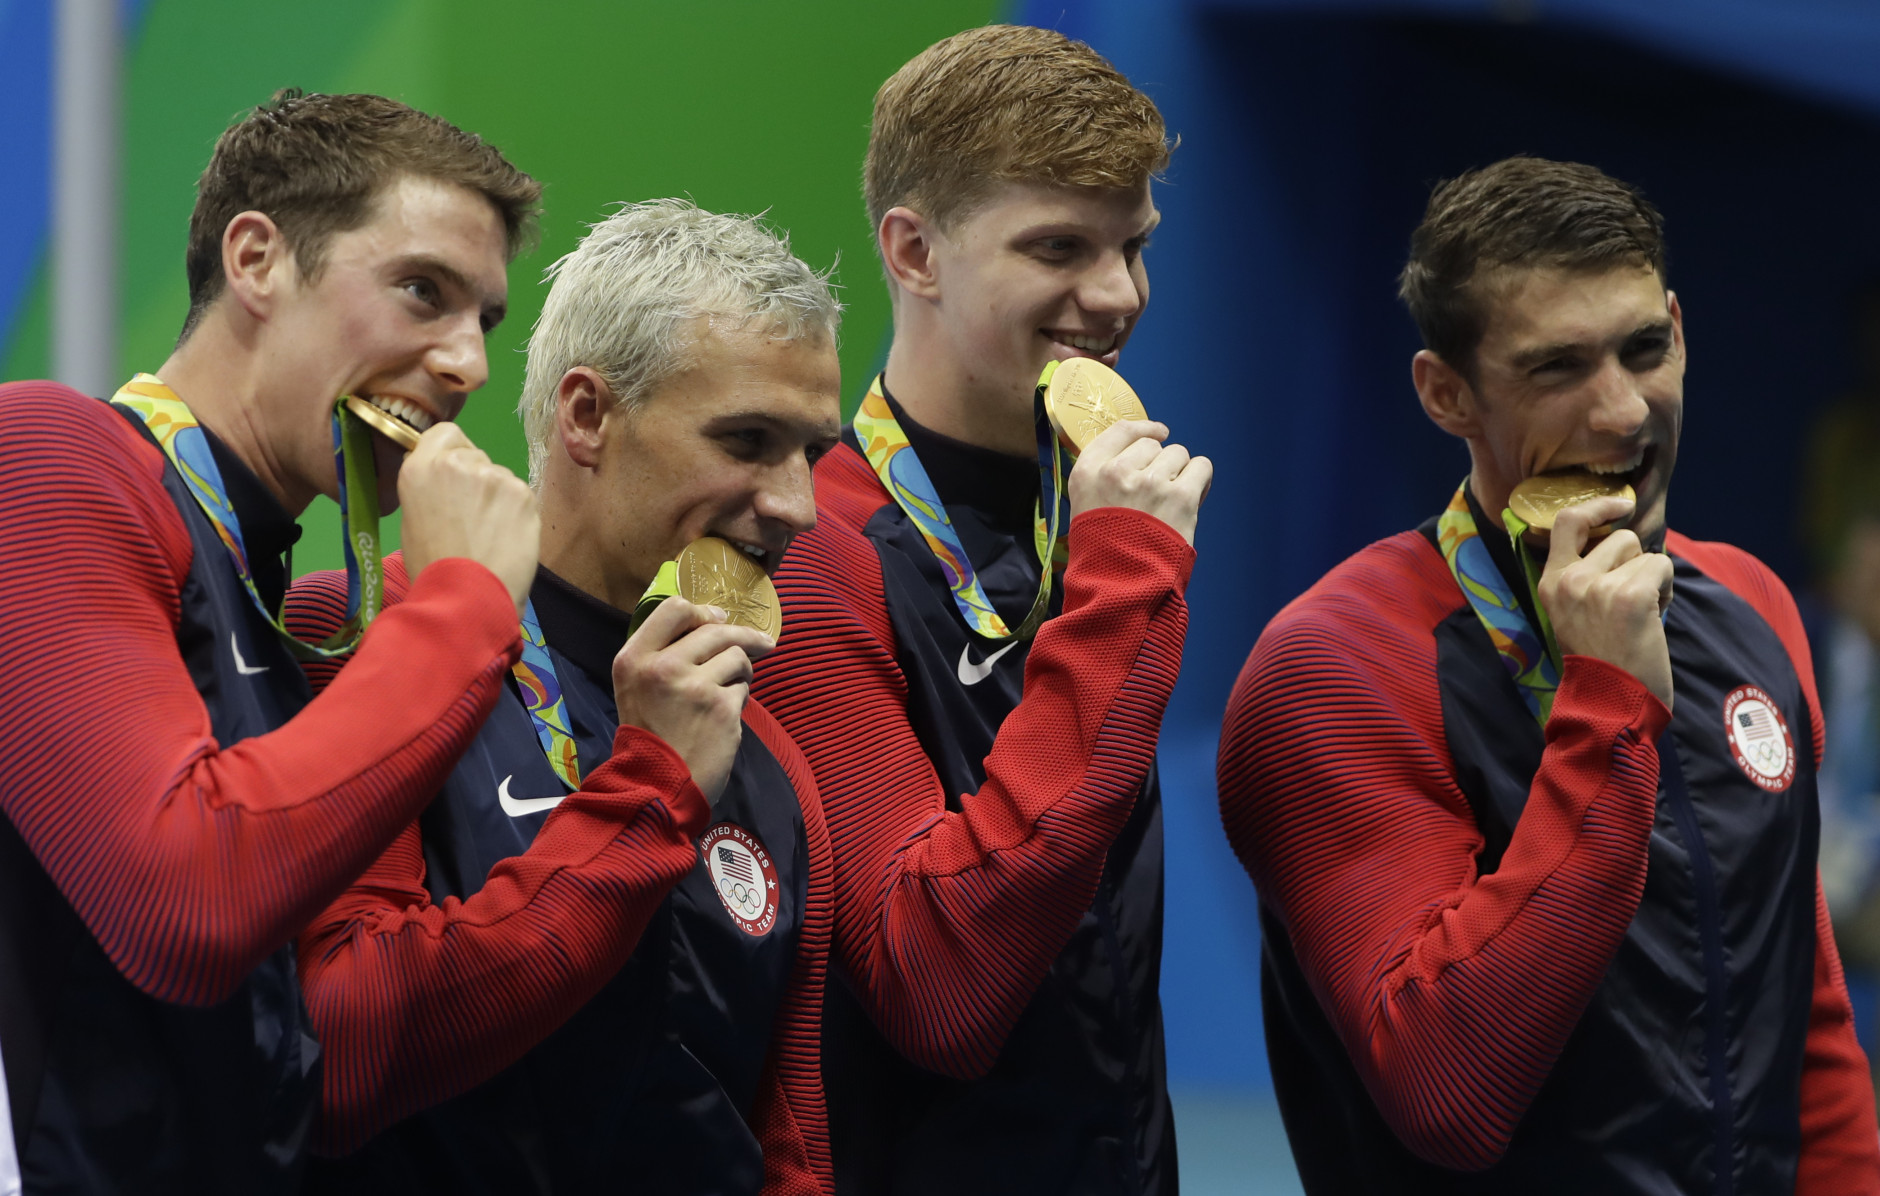 The United States team from left, Conor Dwyer, Ryan Lochte, Townley Haas and Michael Phelps celebrate with their gold medals after the men's 4x200-meter freestyle relay during the swimming competitions at the 2016 Summer Olympics, Wednesday, Aug. 10, 2016, in Rio de Janeiro, Brazil. (AP Photo/Matt Slocum)